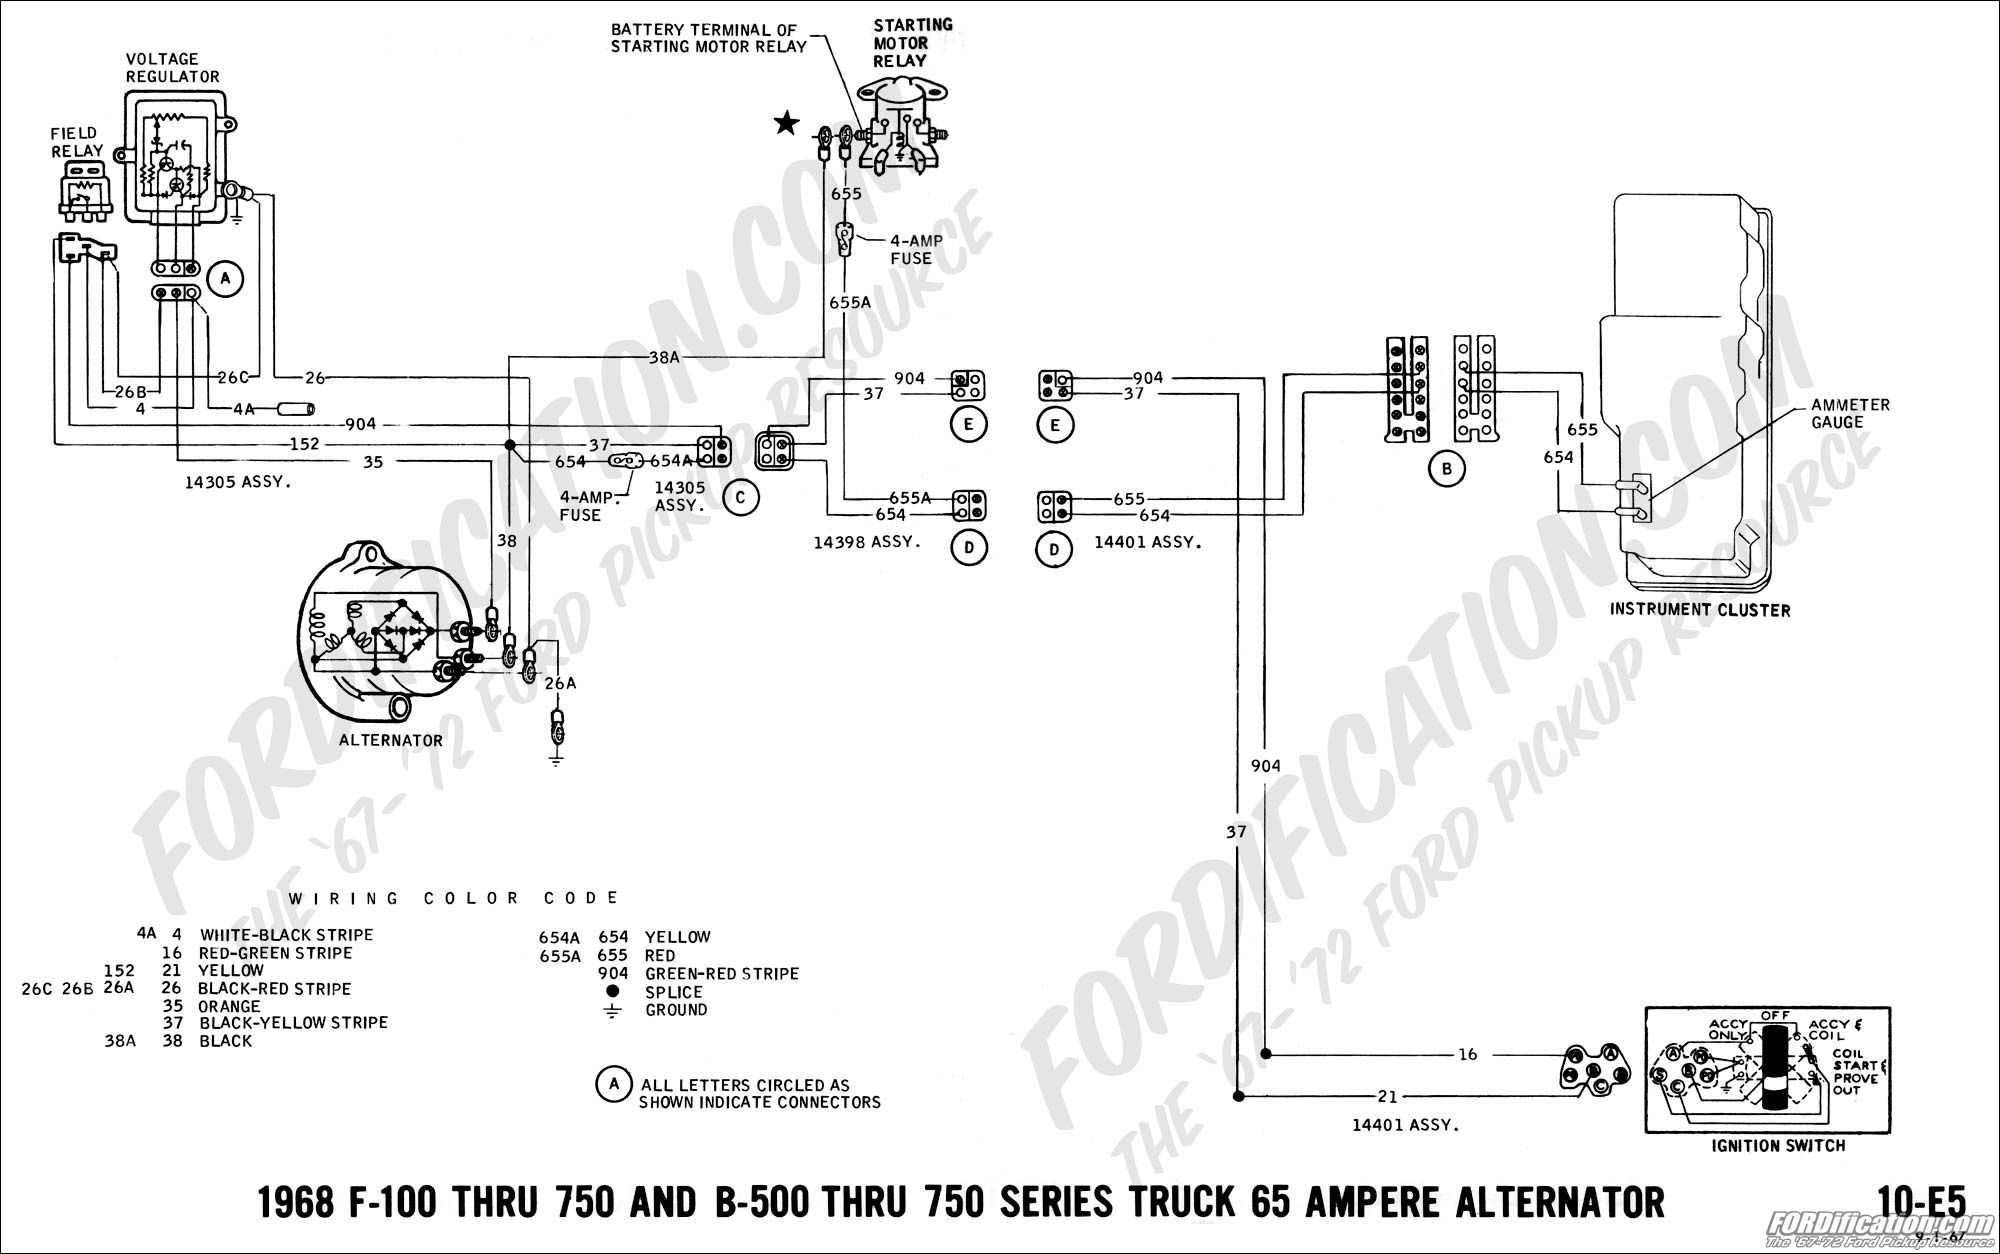 2g alt wire diagram wiring diagram schematics 1989 ford mustang alternator  wiring diagram 1956 ford alternator